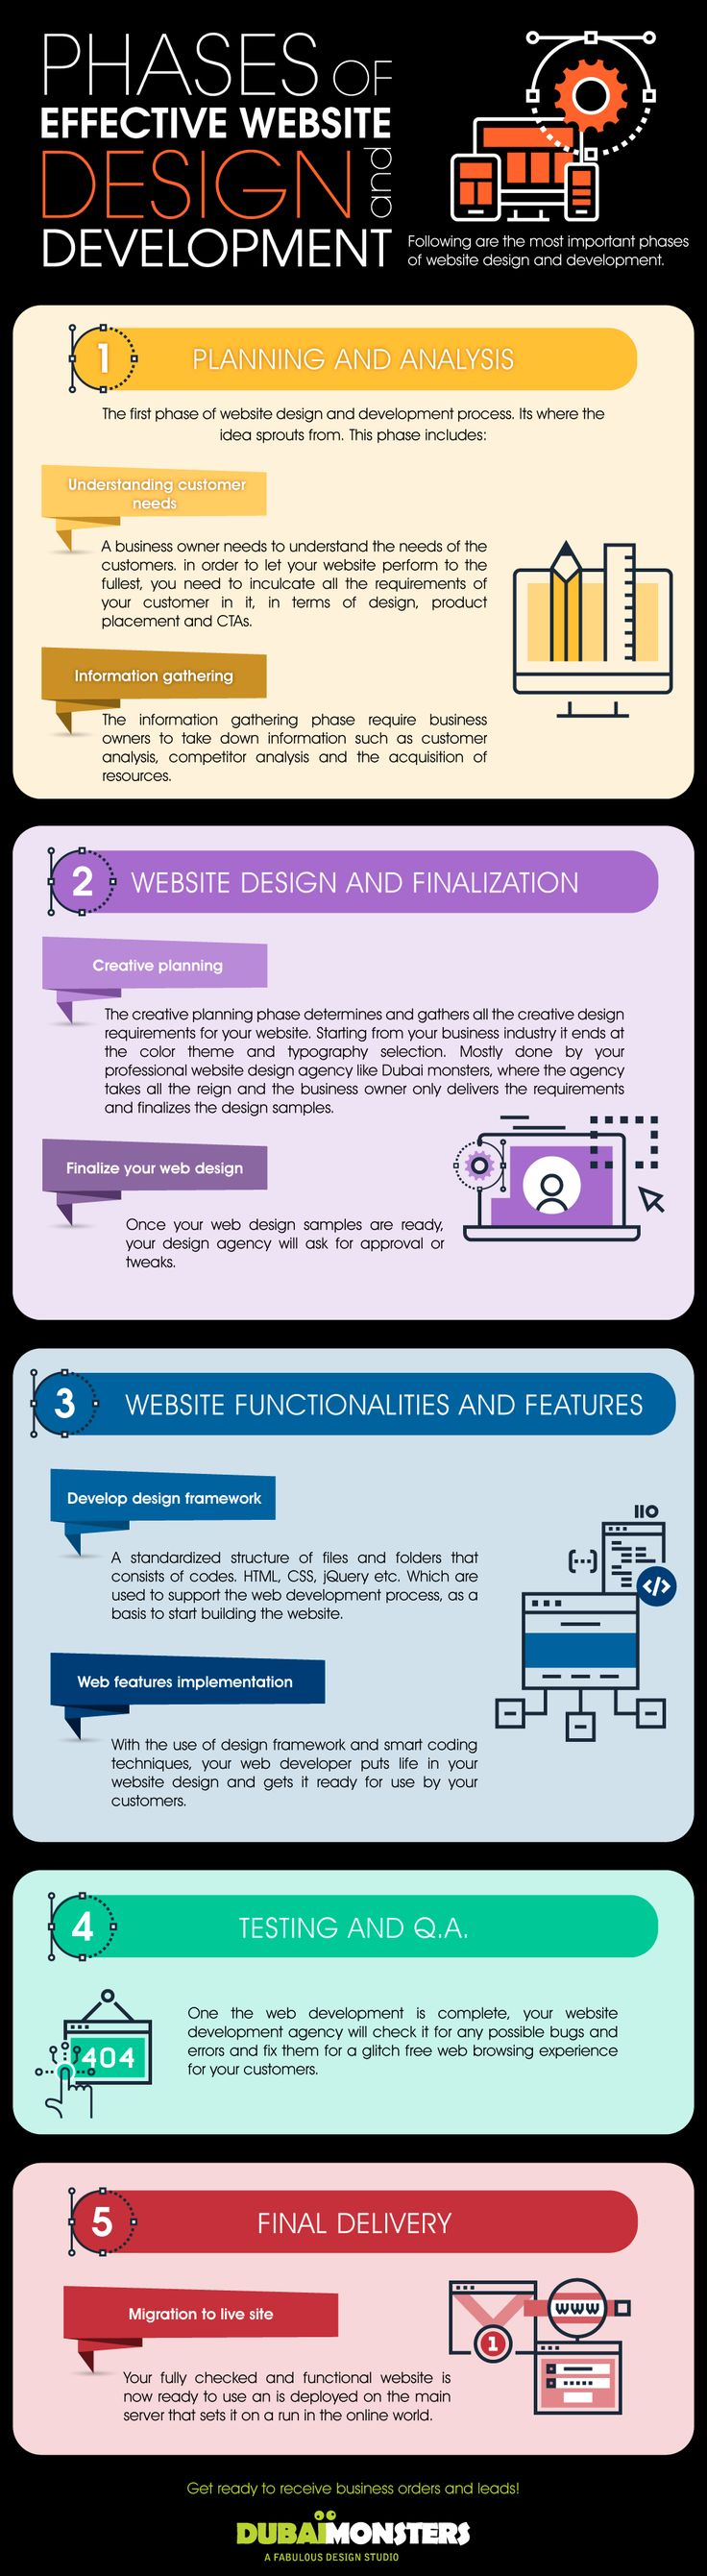 Phases Of Effective Website Design And Development #Infographic #WebDevelopment